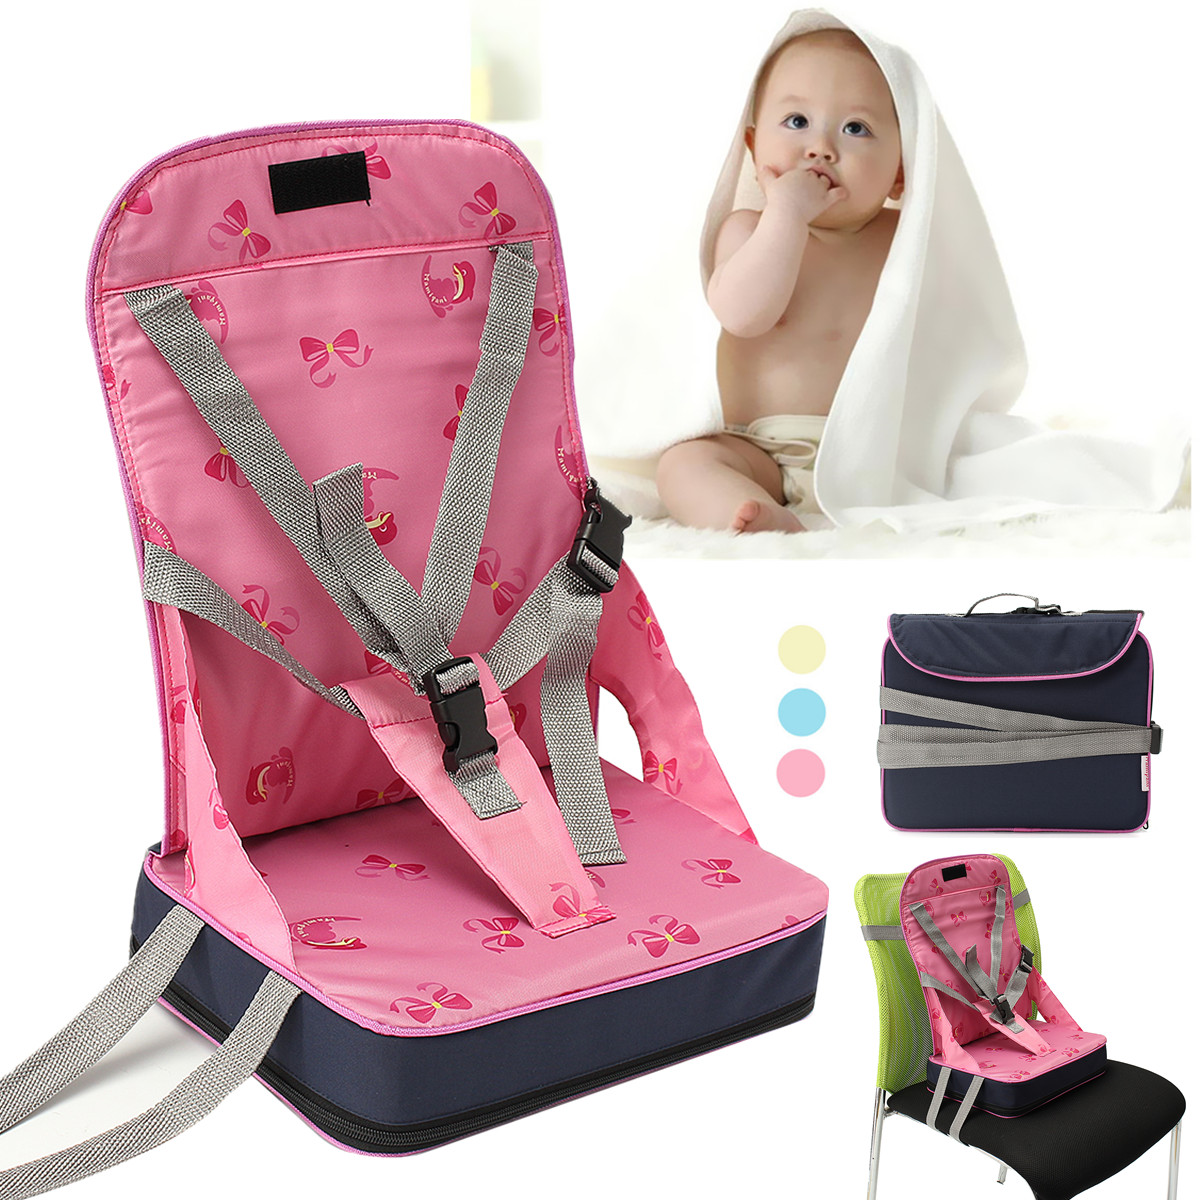 Portable Baby High Chair Dining Feeding Chair Foldable Kids Booster Seat Travel ,Pink color